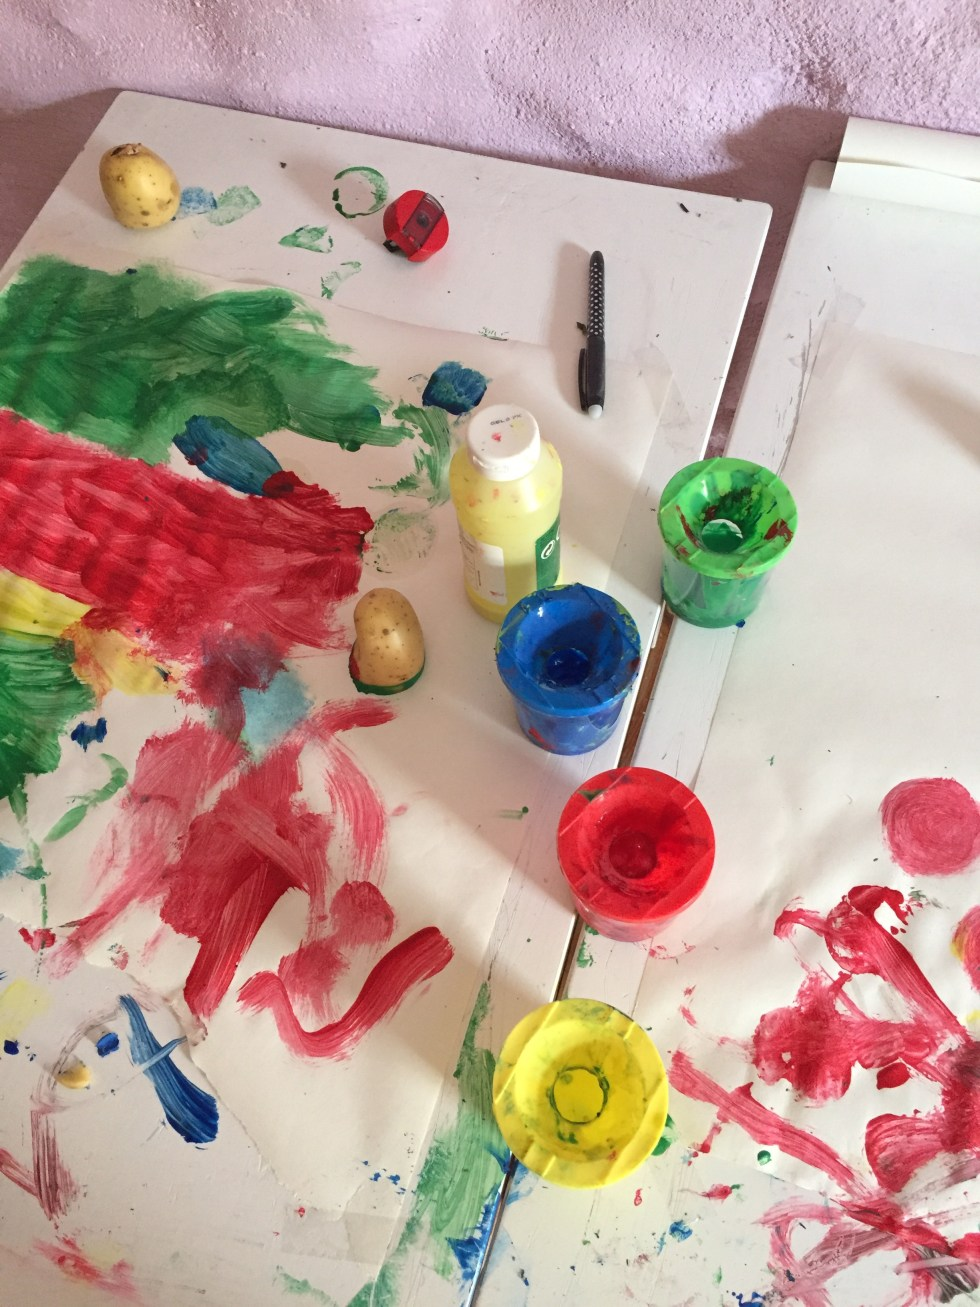 A picture of a kid's painting table